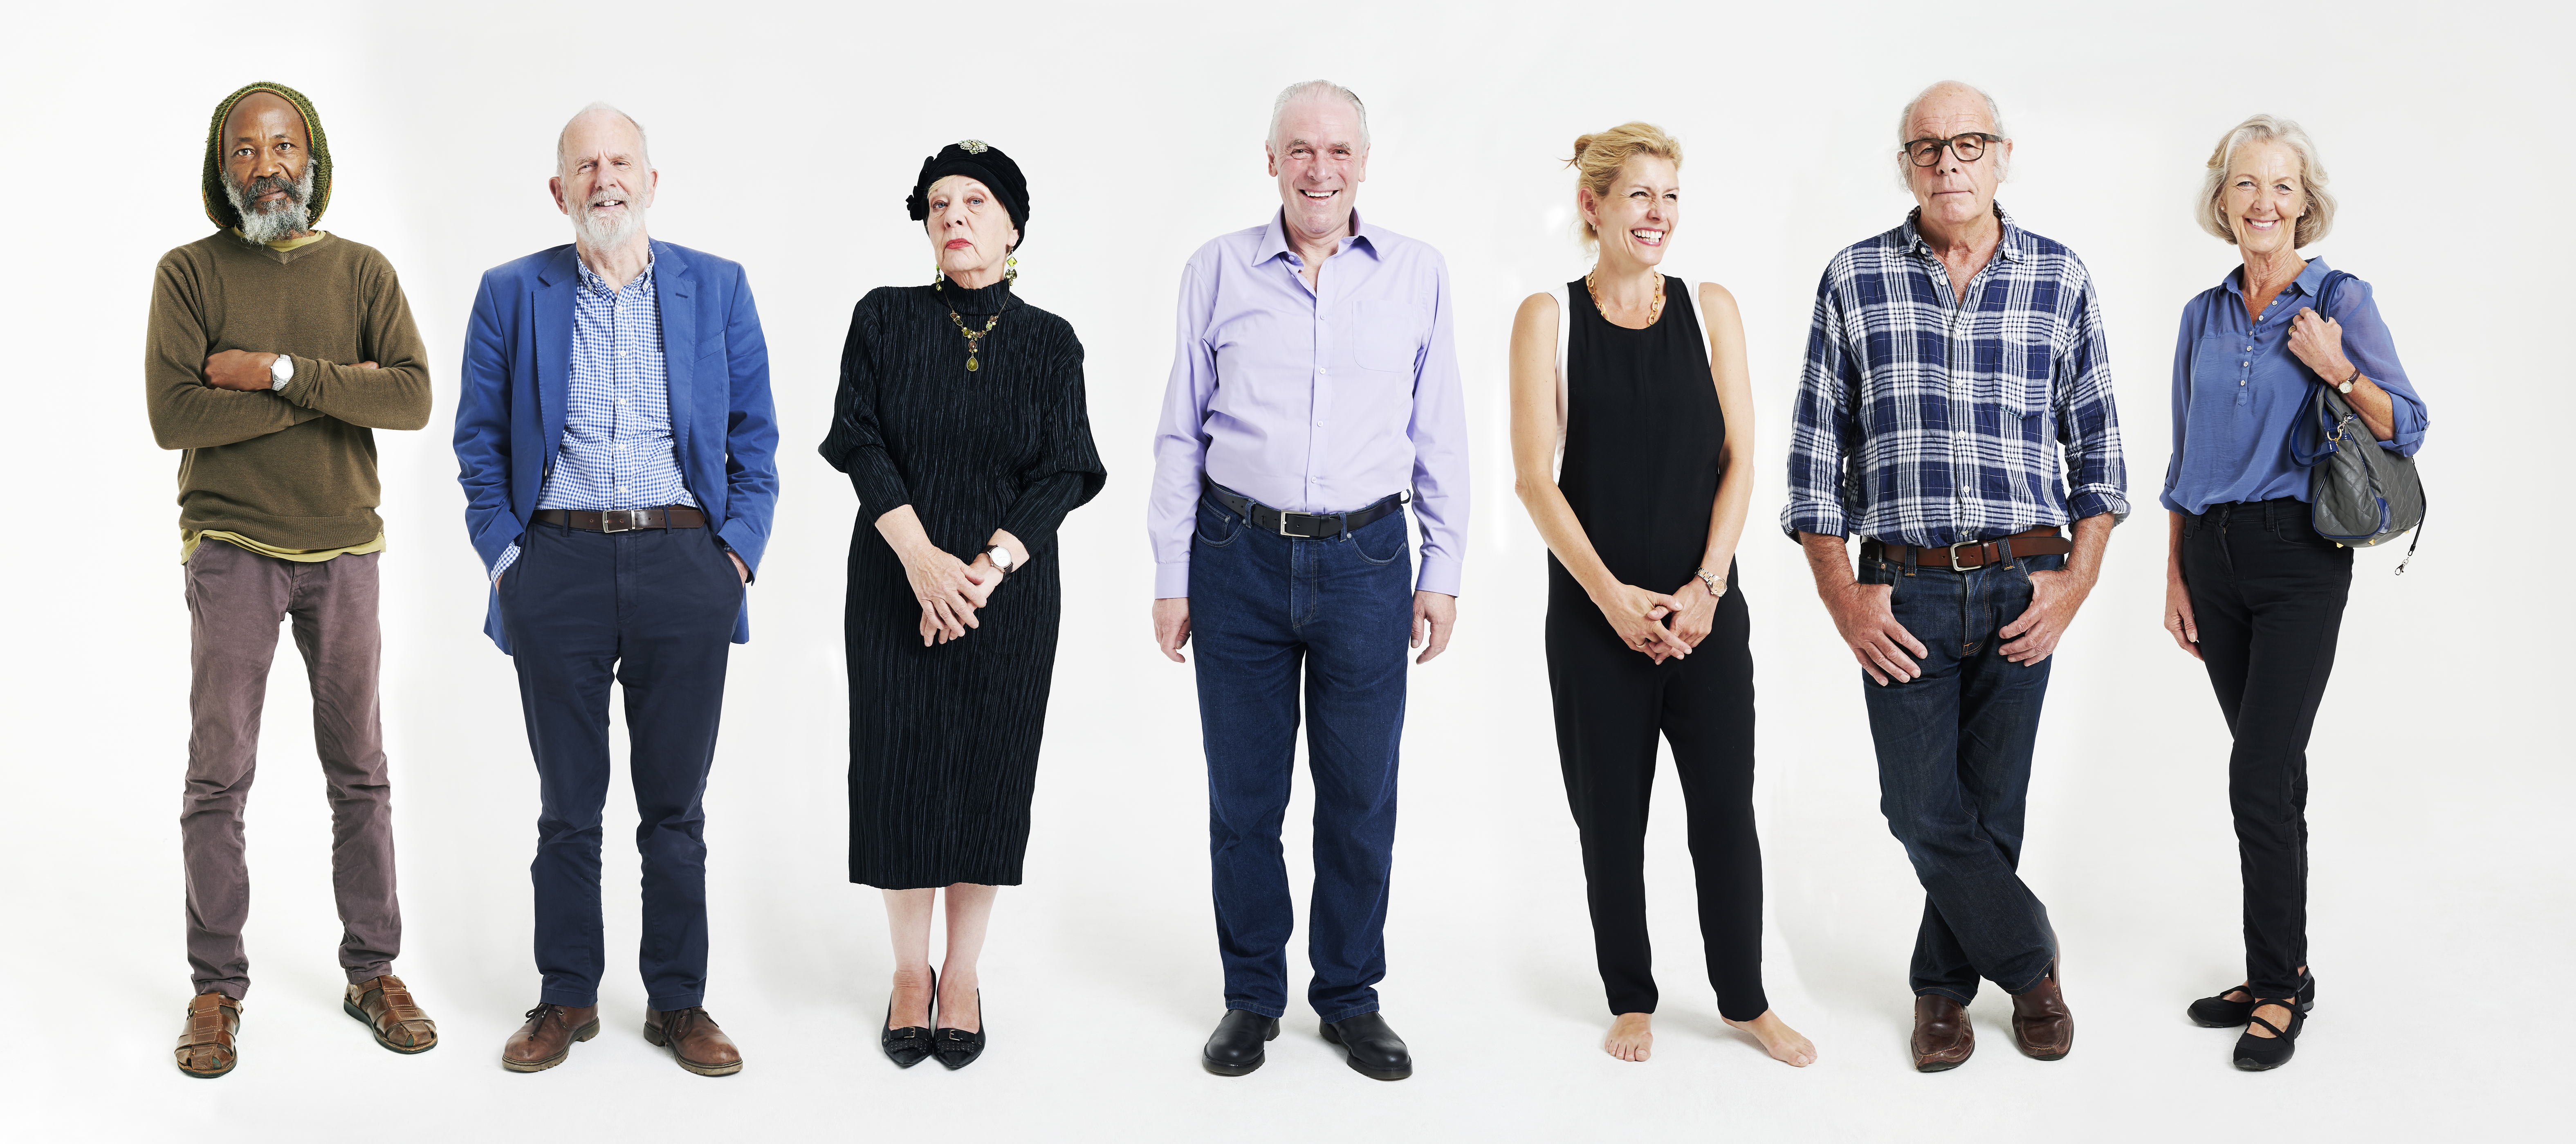 Line-up of mature people